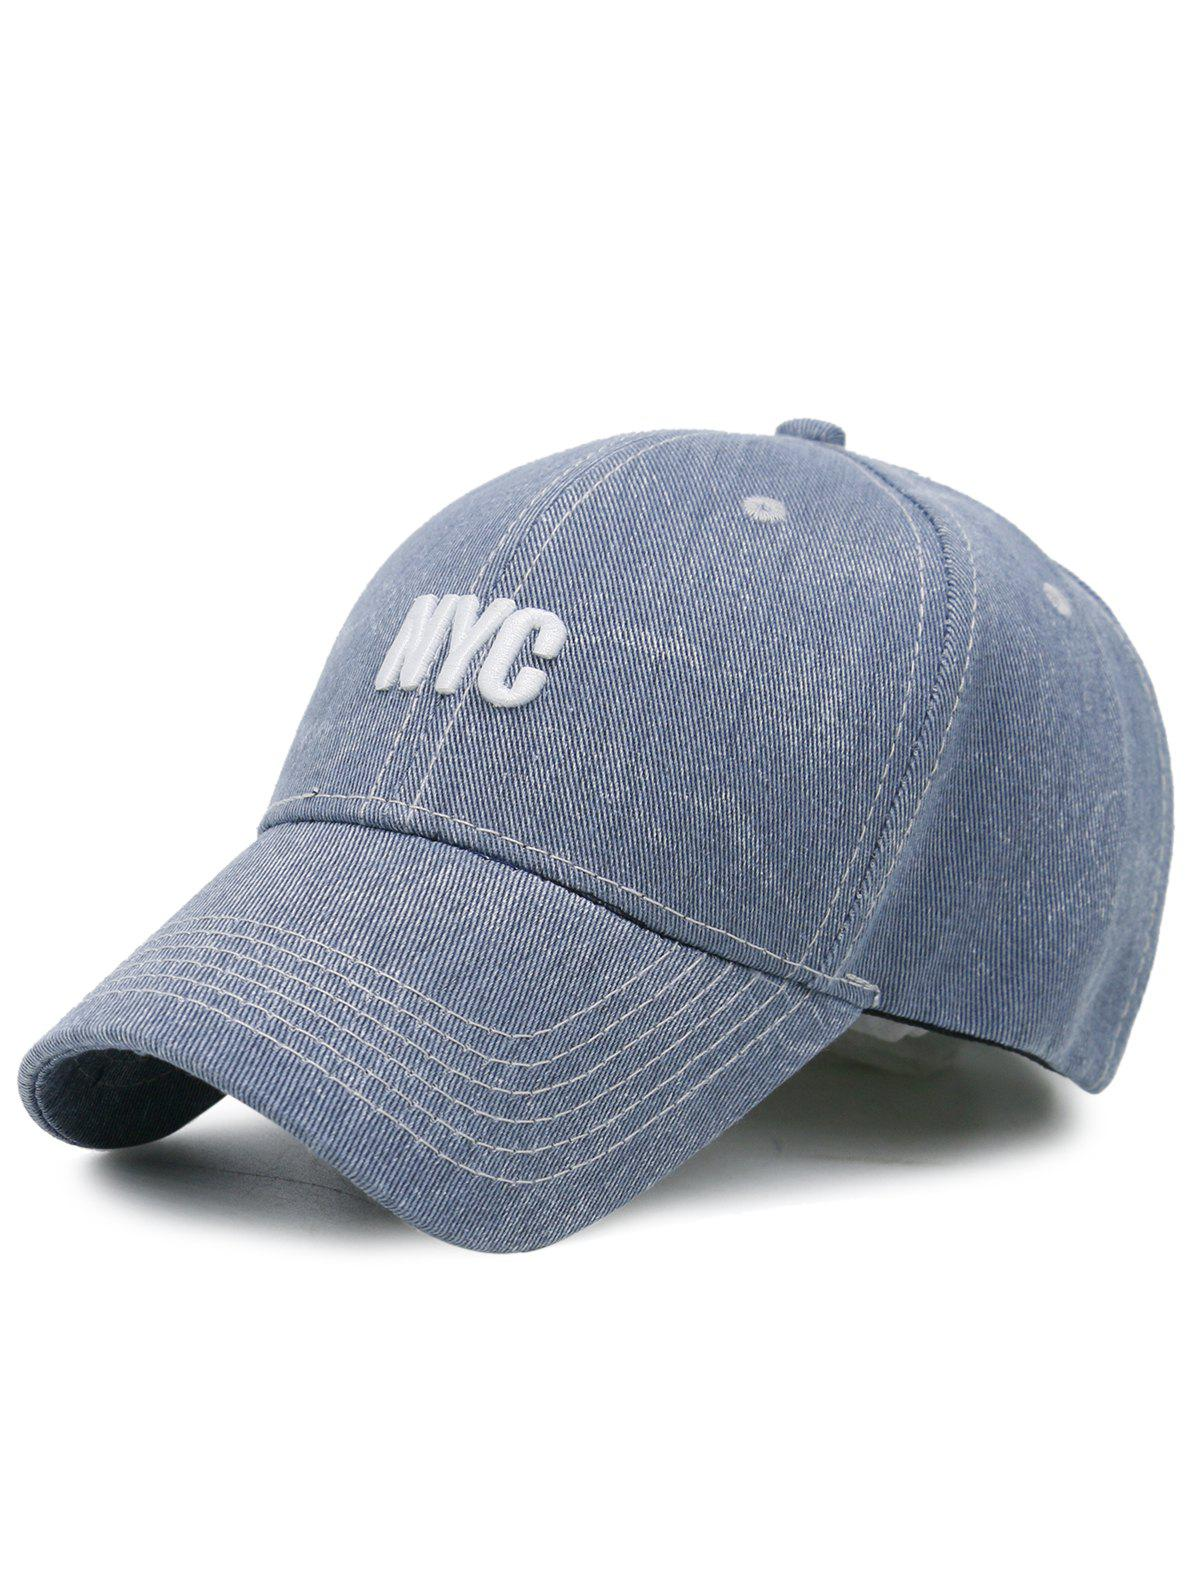 2018 Unique Nyc Embroidery Washed Baseball Hat Light Blue In Hats